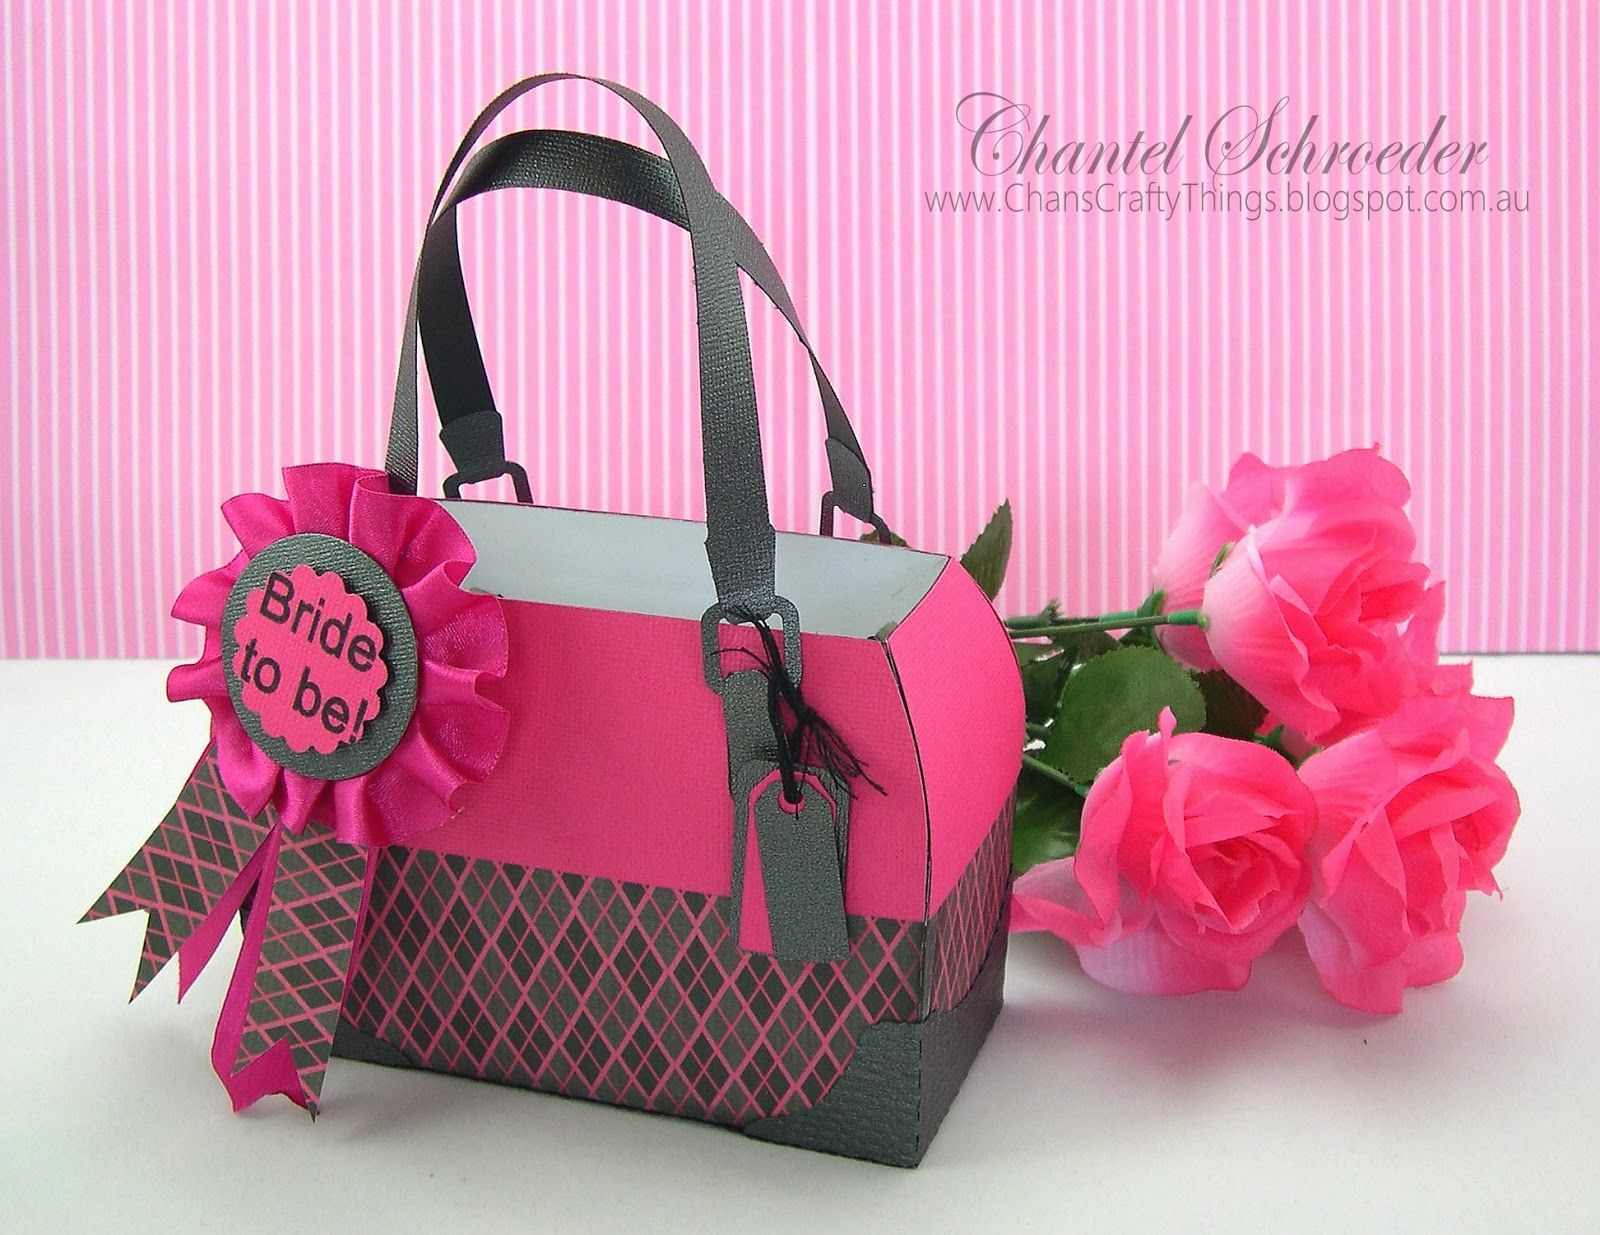 feba4a644cc7 LUXURY HANDBAGS SVG KIT is definitely the kit to have when needing a small  gift bag with a girlie touch! Chantel designed this pretty Satchel in her  ...